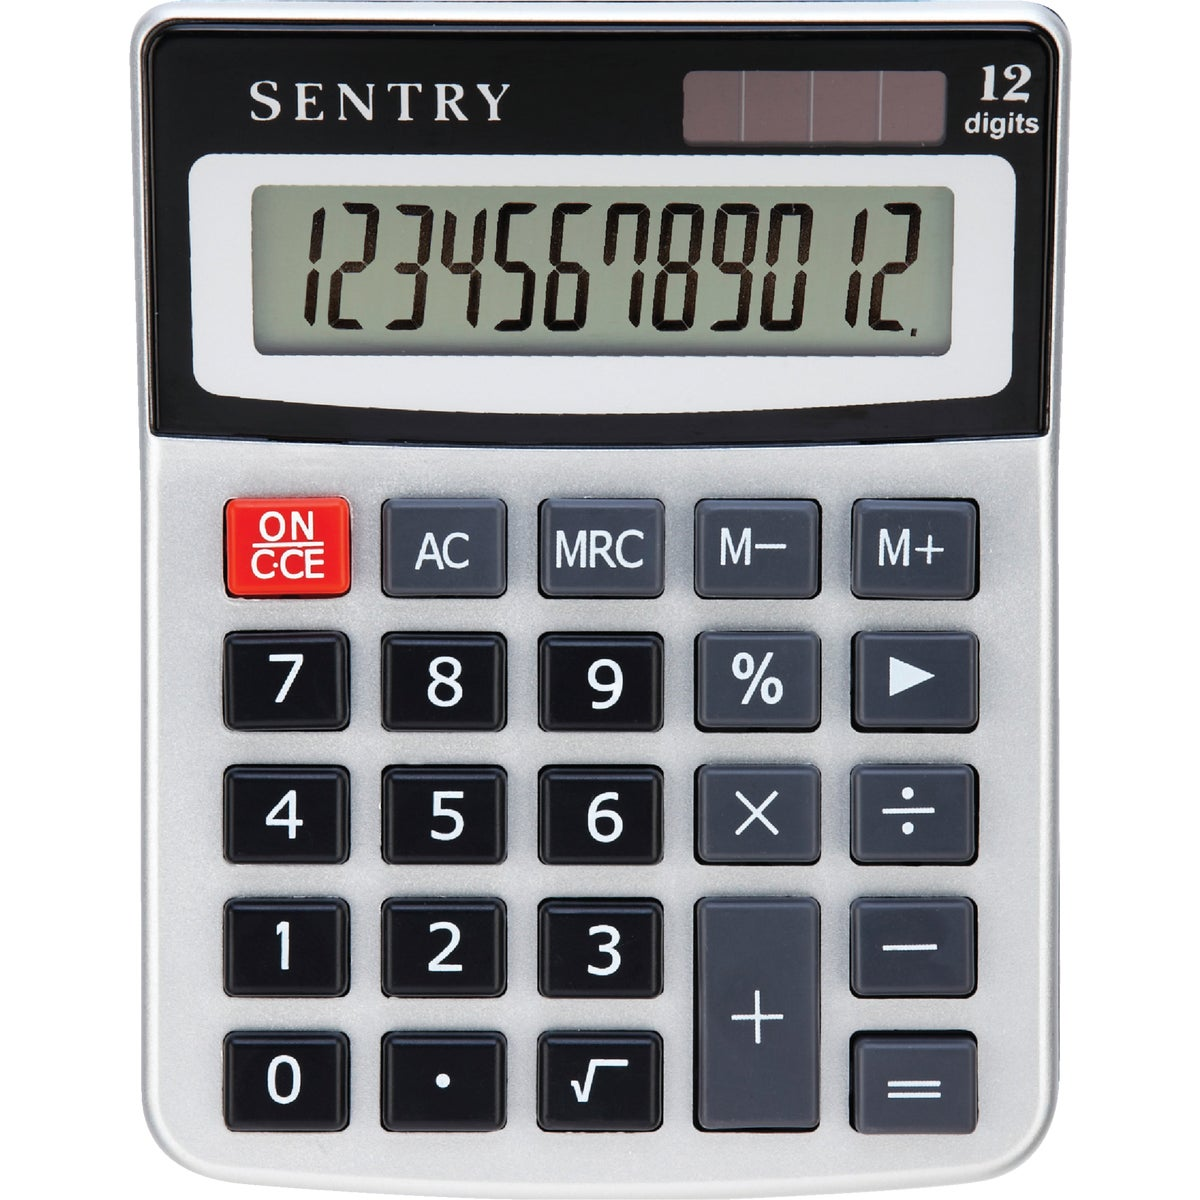 MINI DESK CALCULATOR - CA272 by Sentry Industries